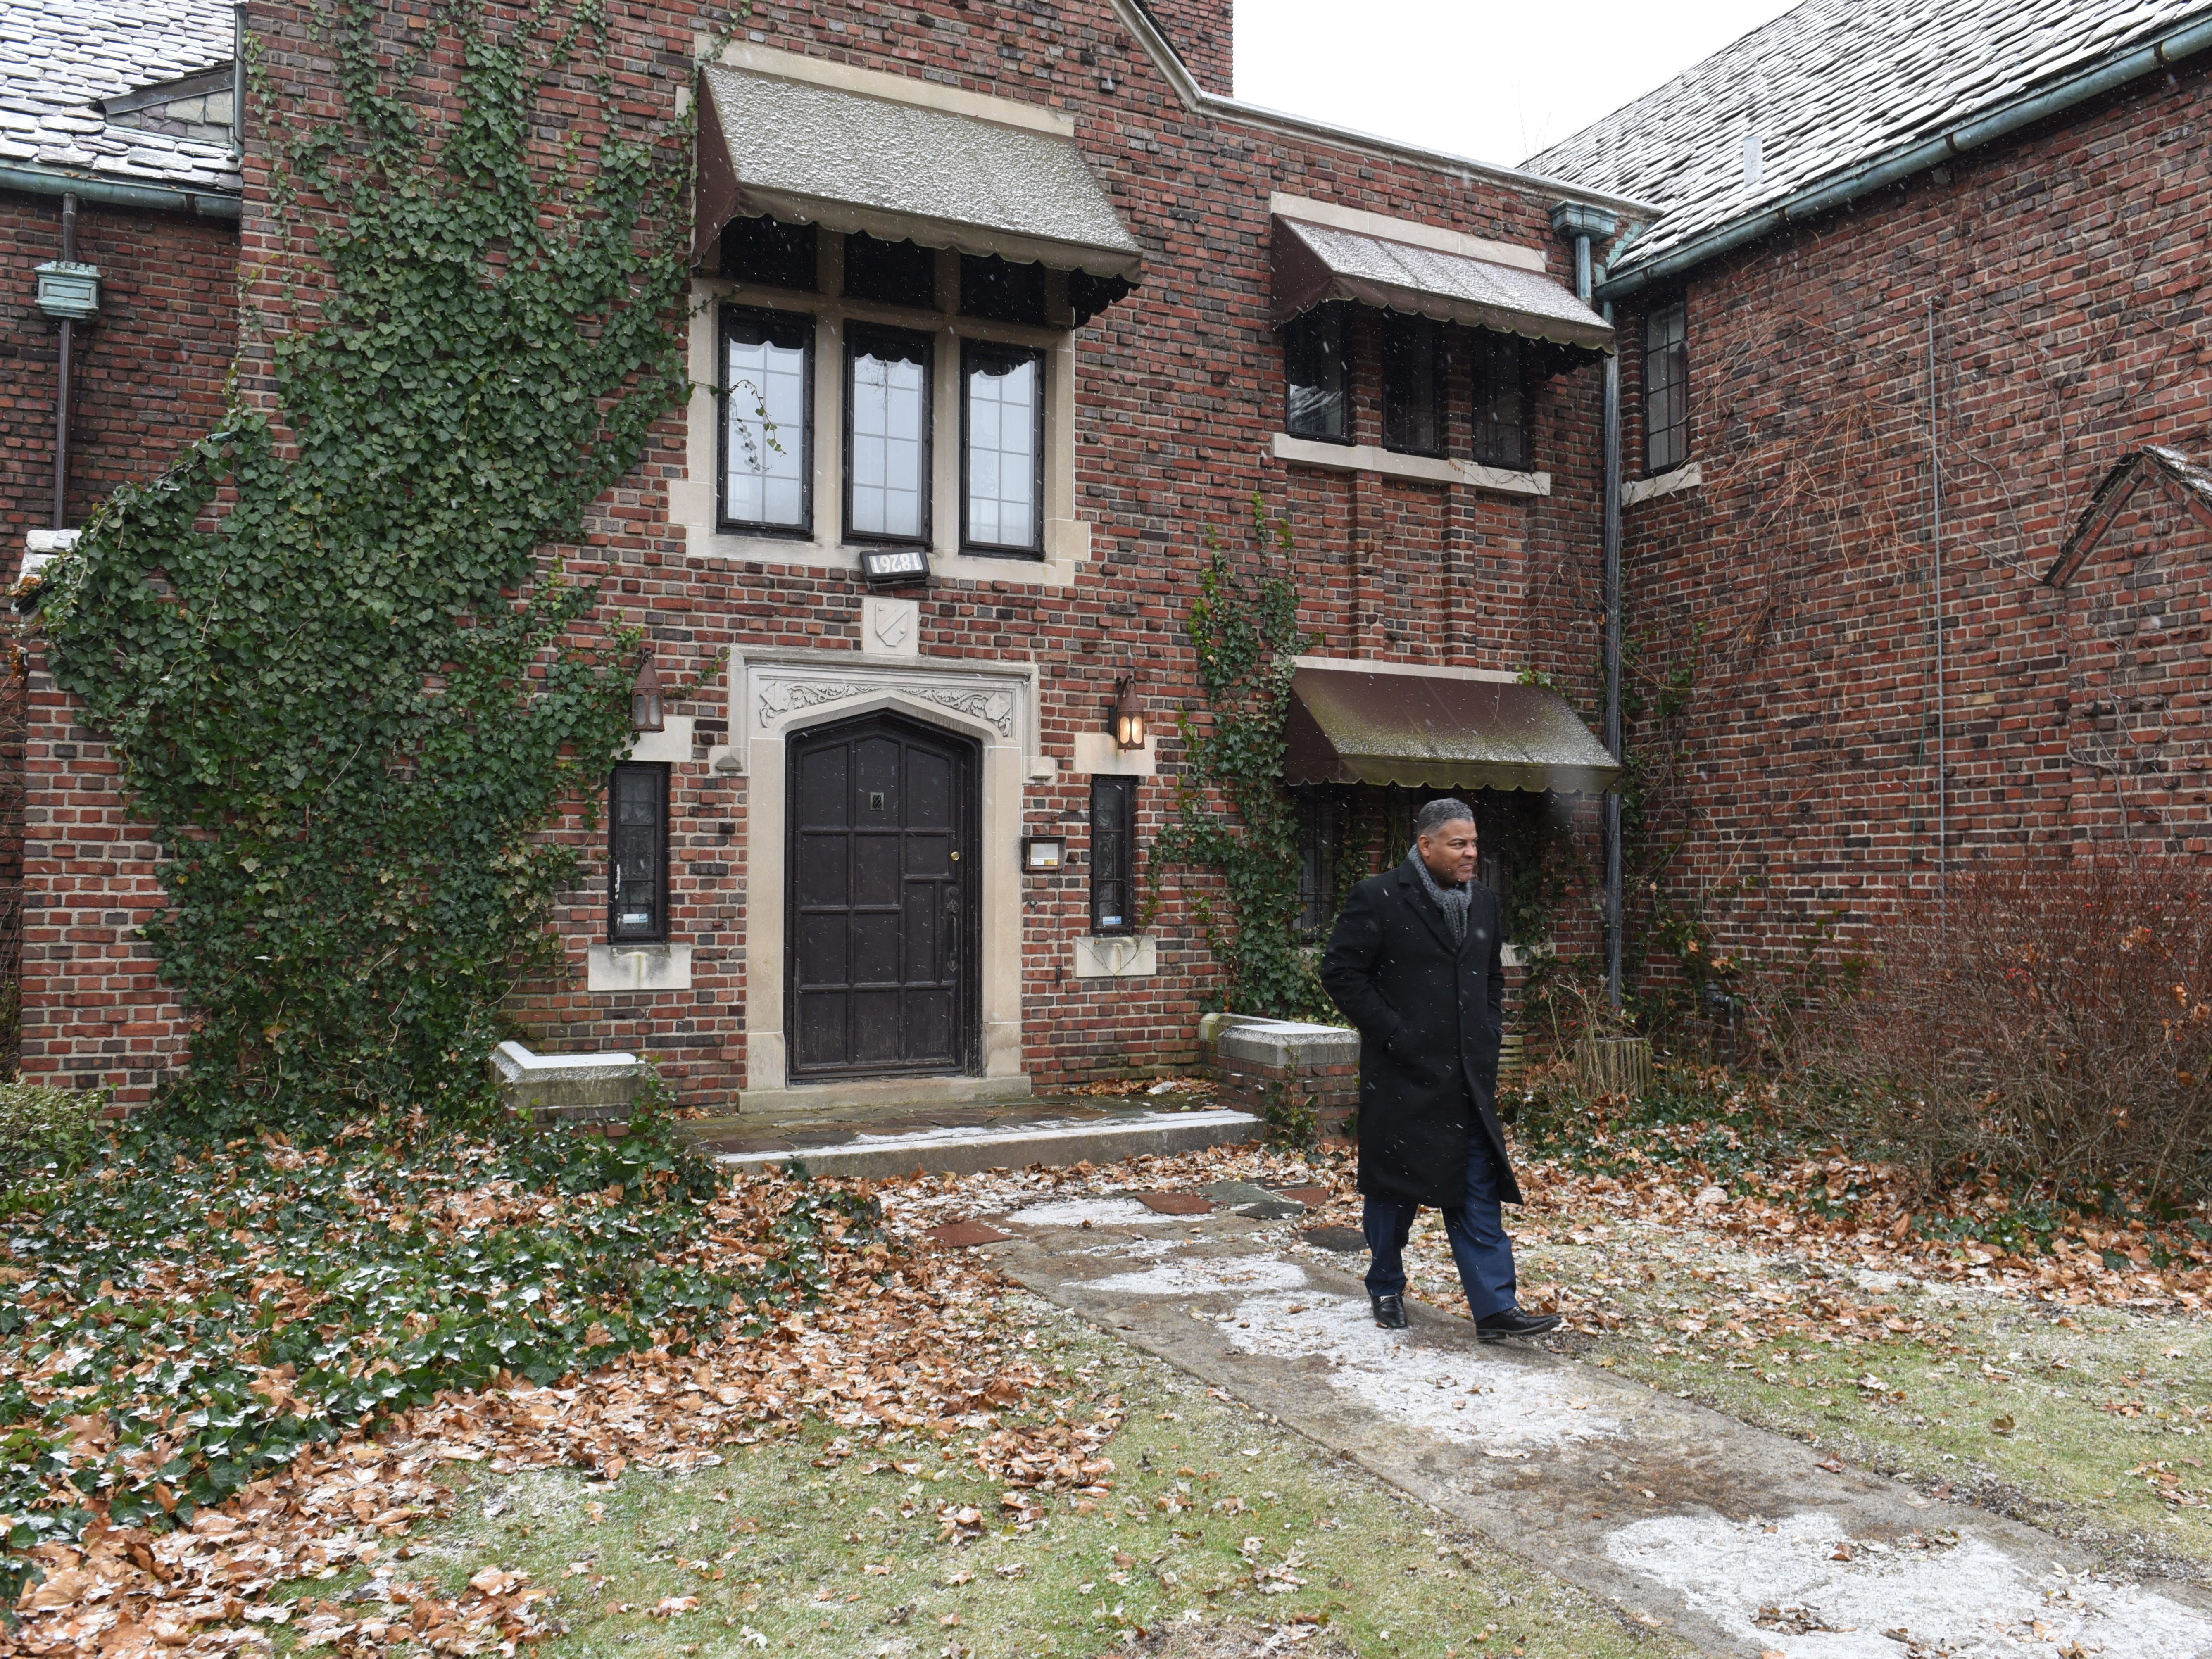 New owner Anthony O. Kellum expects renovations to begin in January 2019.